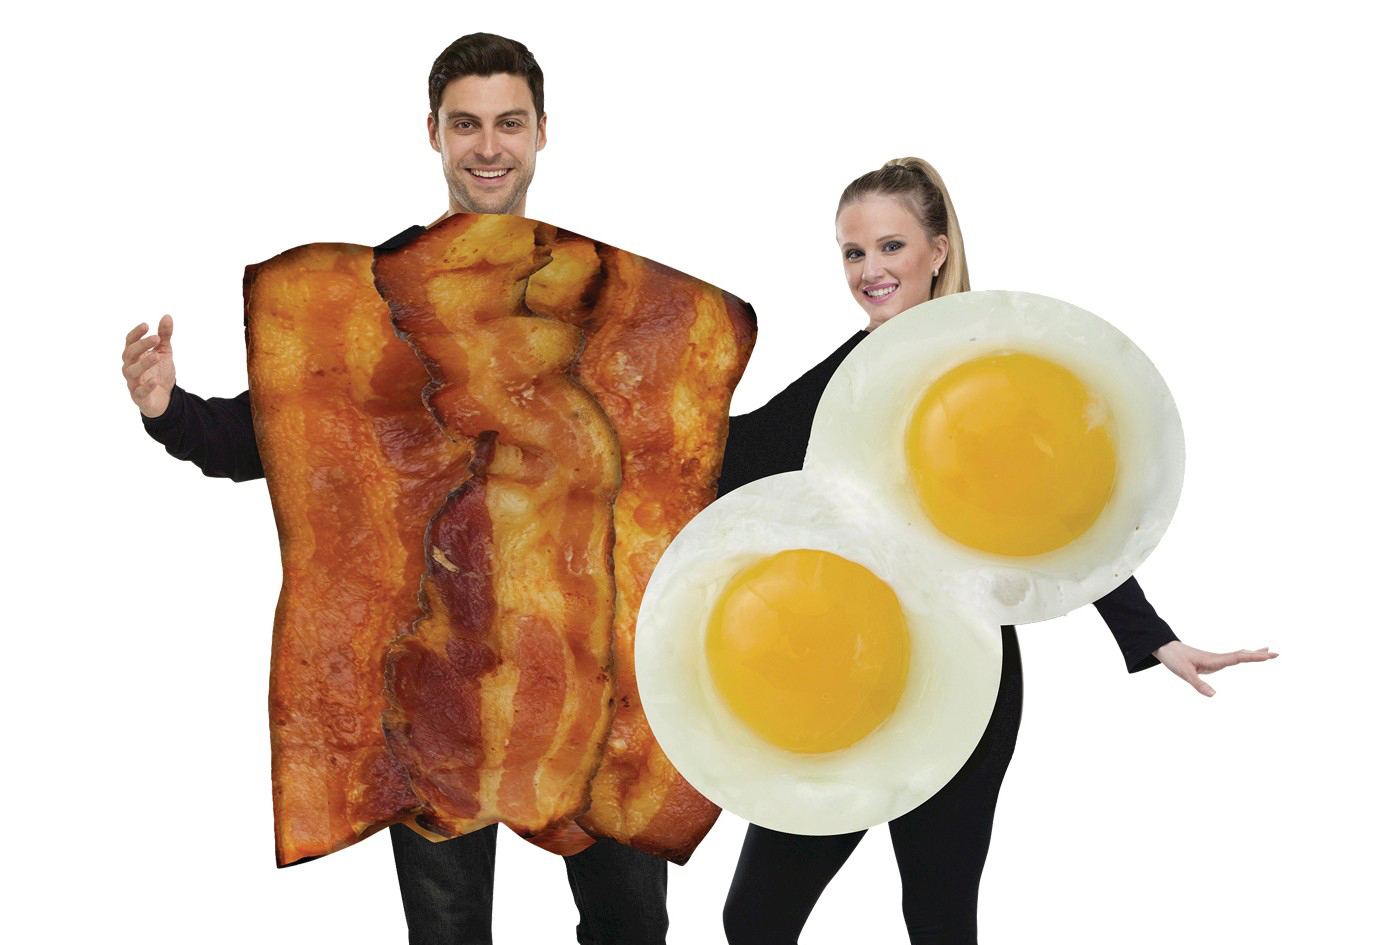 bacon and eggs couples' costume for halloween